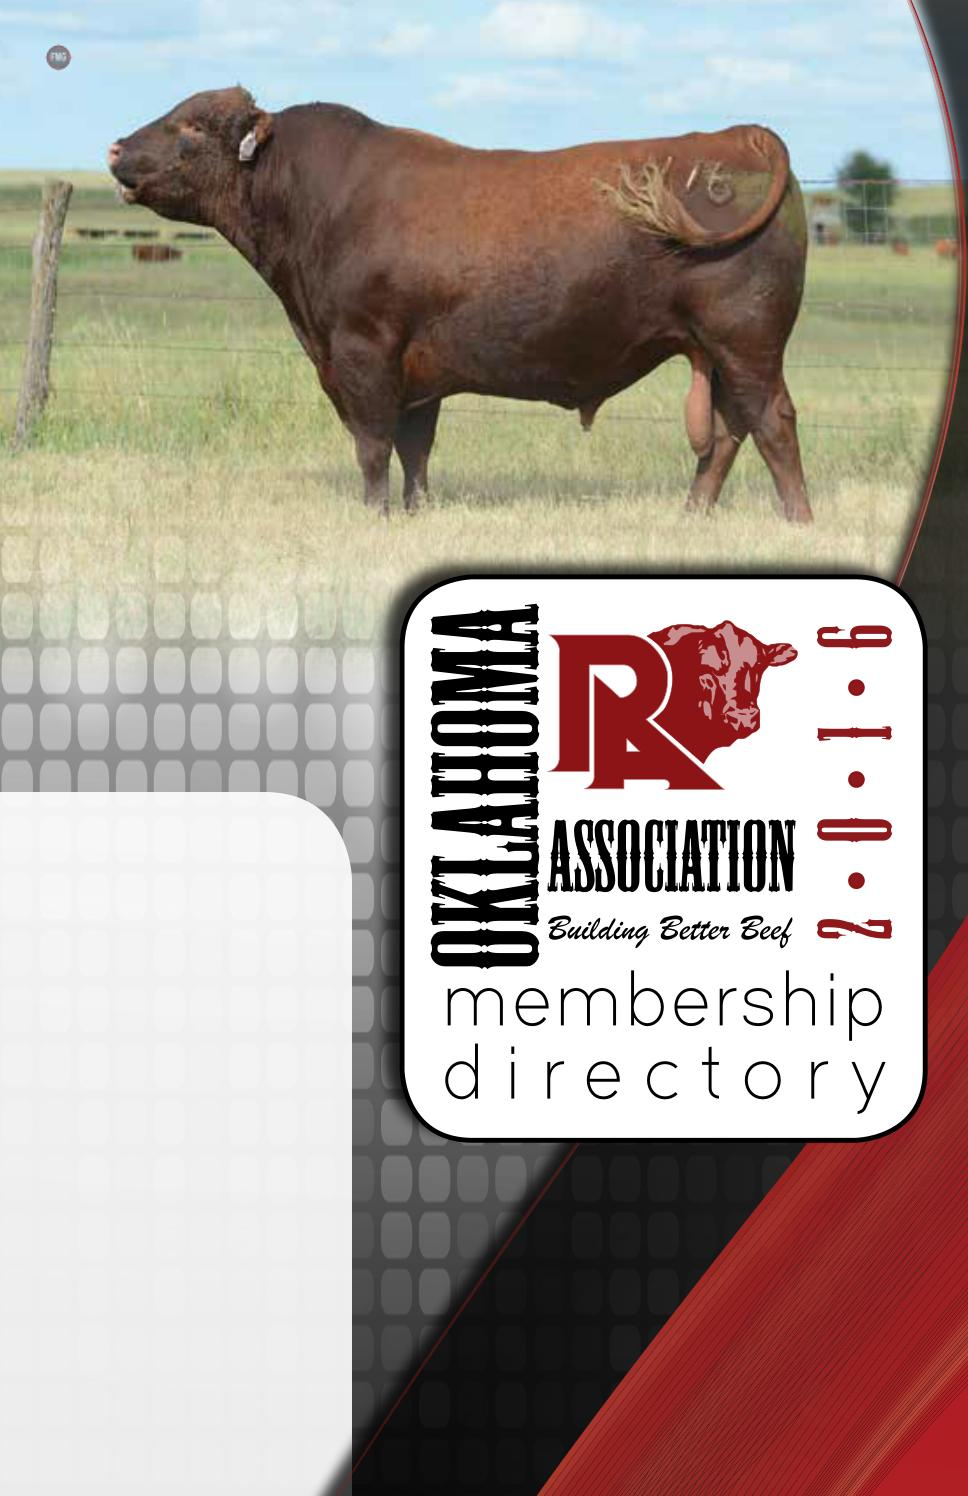 ok red angus association membership directory by focus 2016 ok red angus association membership directory by focus marketing group inc issuu